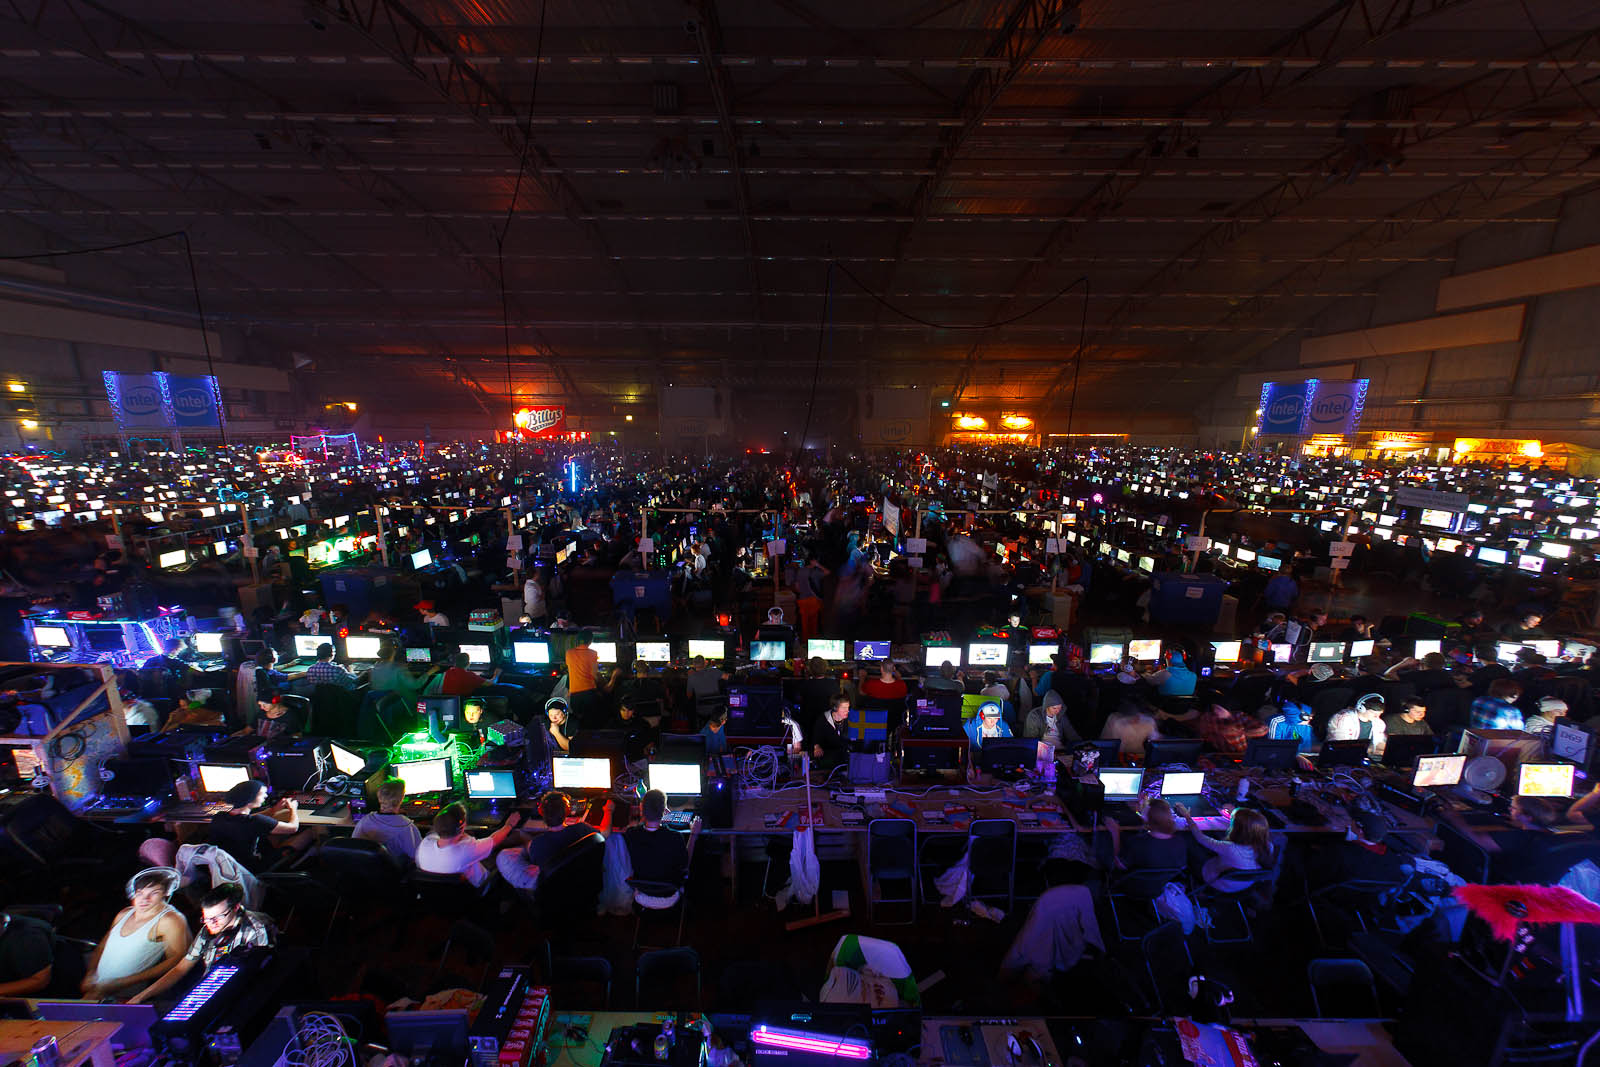 Lights out at DreamHack Winter 2011